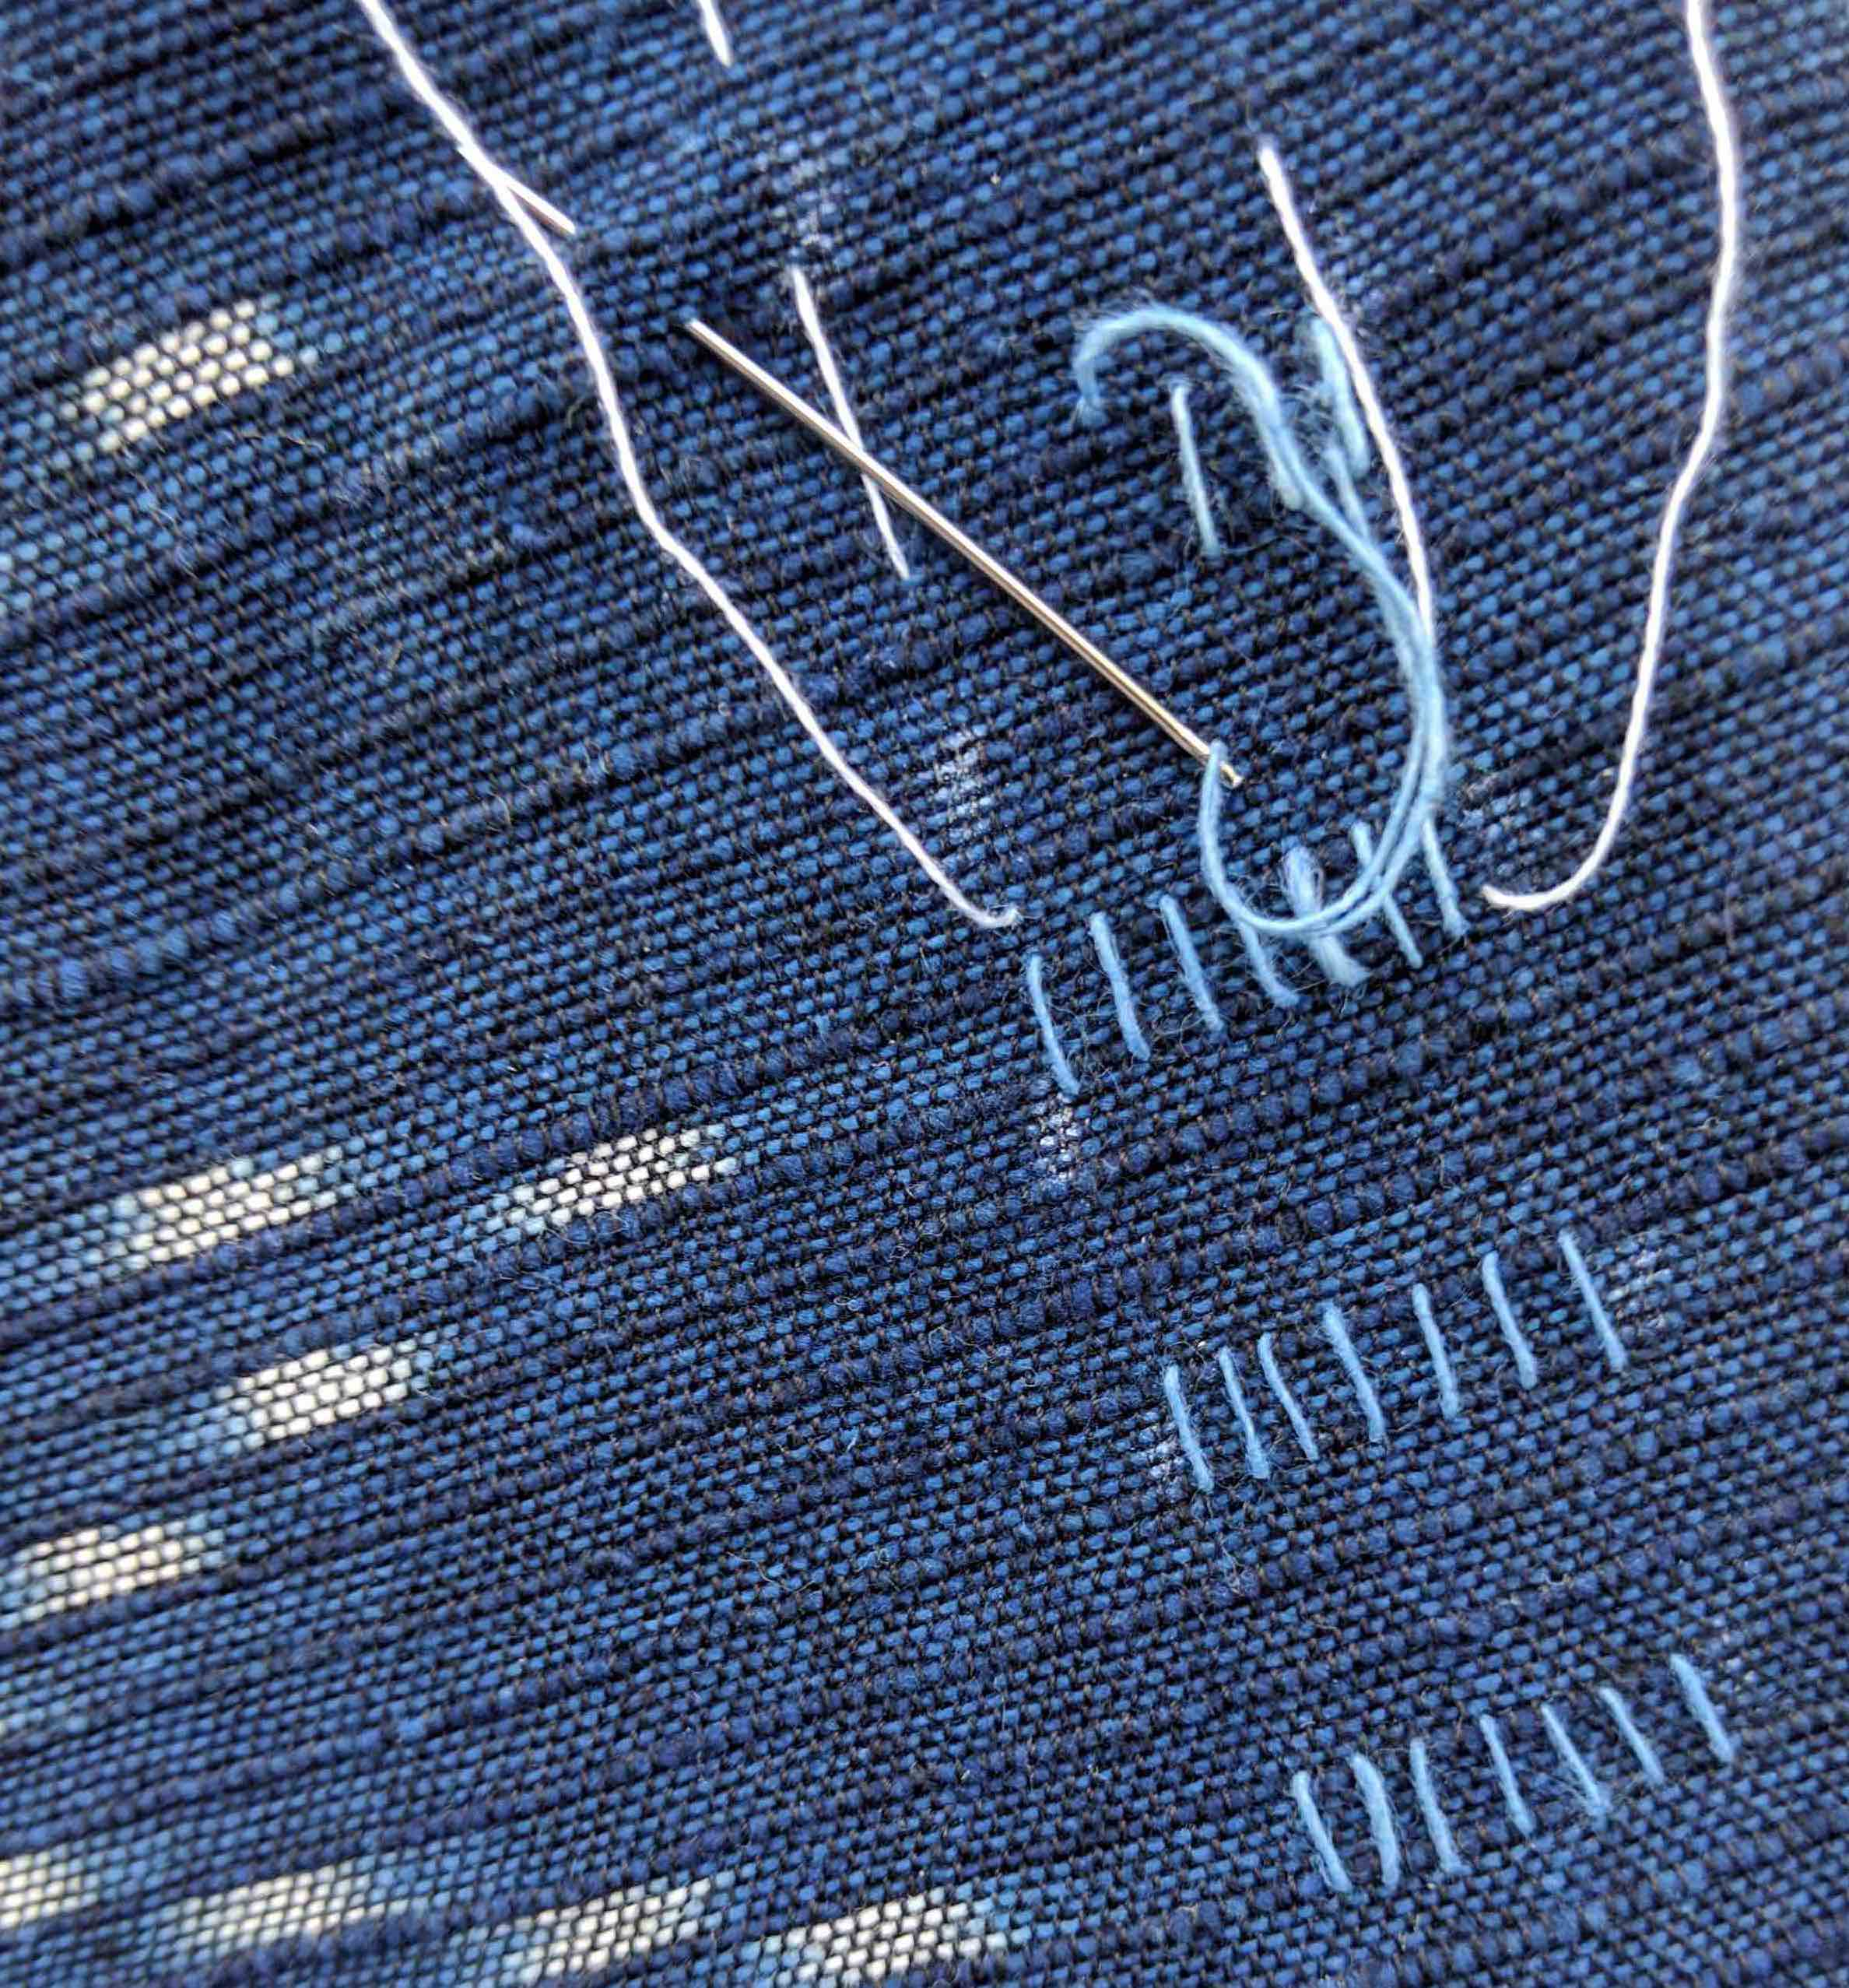 It's somewhat difficult working with this thread, as it tends to break more easily. I go slow. All this takes time. I'm also stitching the pattern in between the indigo ikat fabric and the lining to minimize thread on the inside. But I love the variation of thread's thickness, which adds another visual language to the simple stitches. I decided to use a guide to keep my rows and columns straight, too!